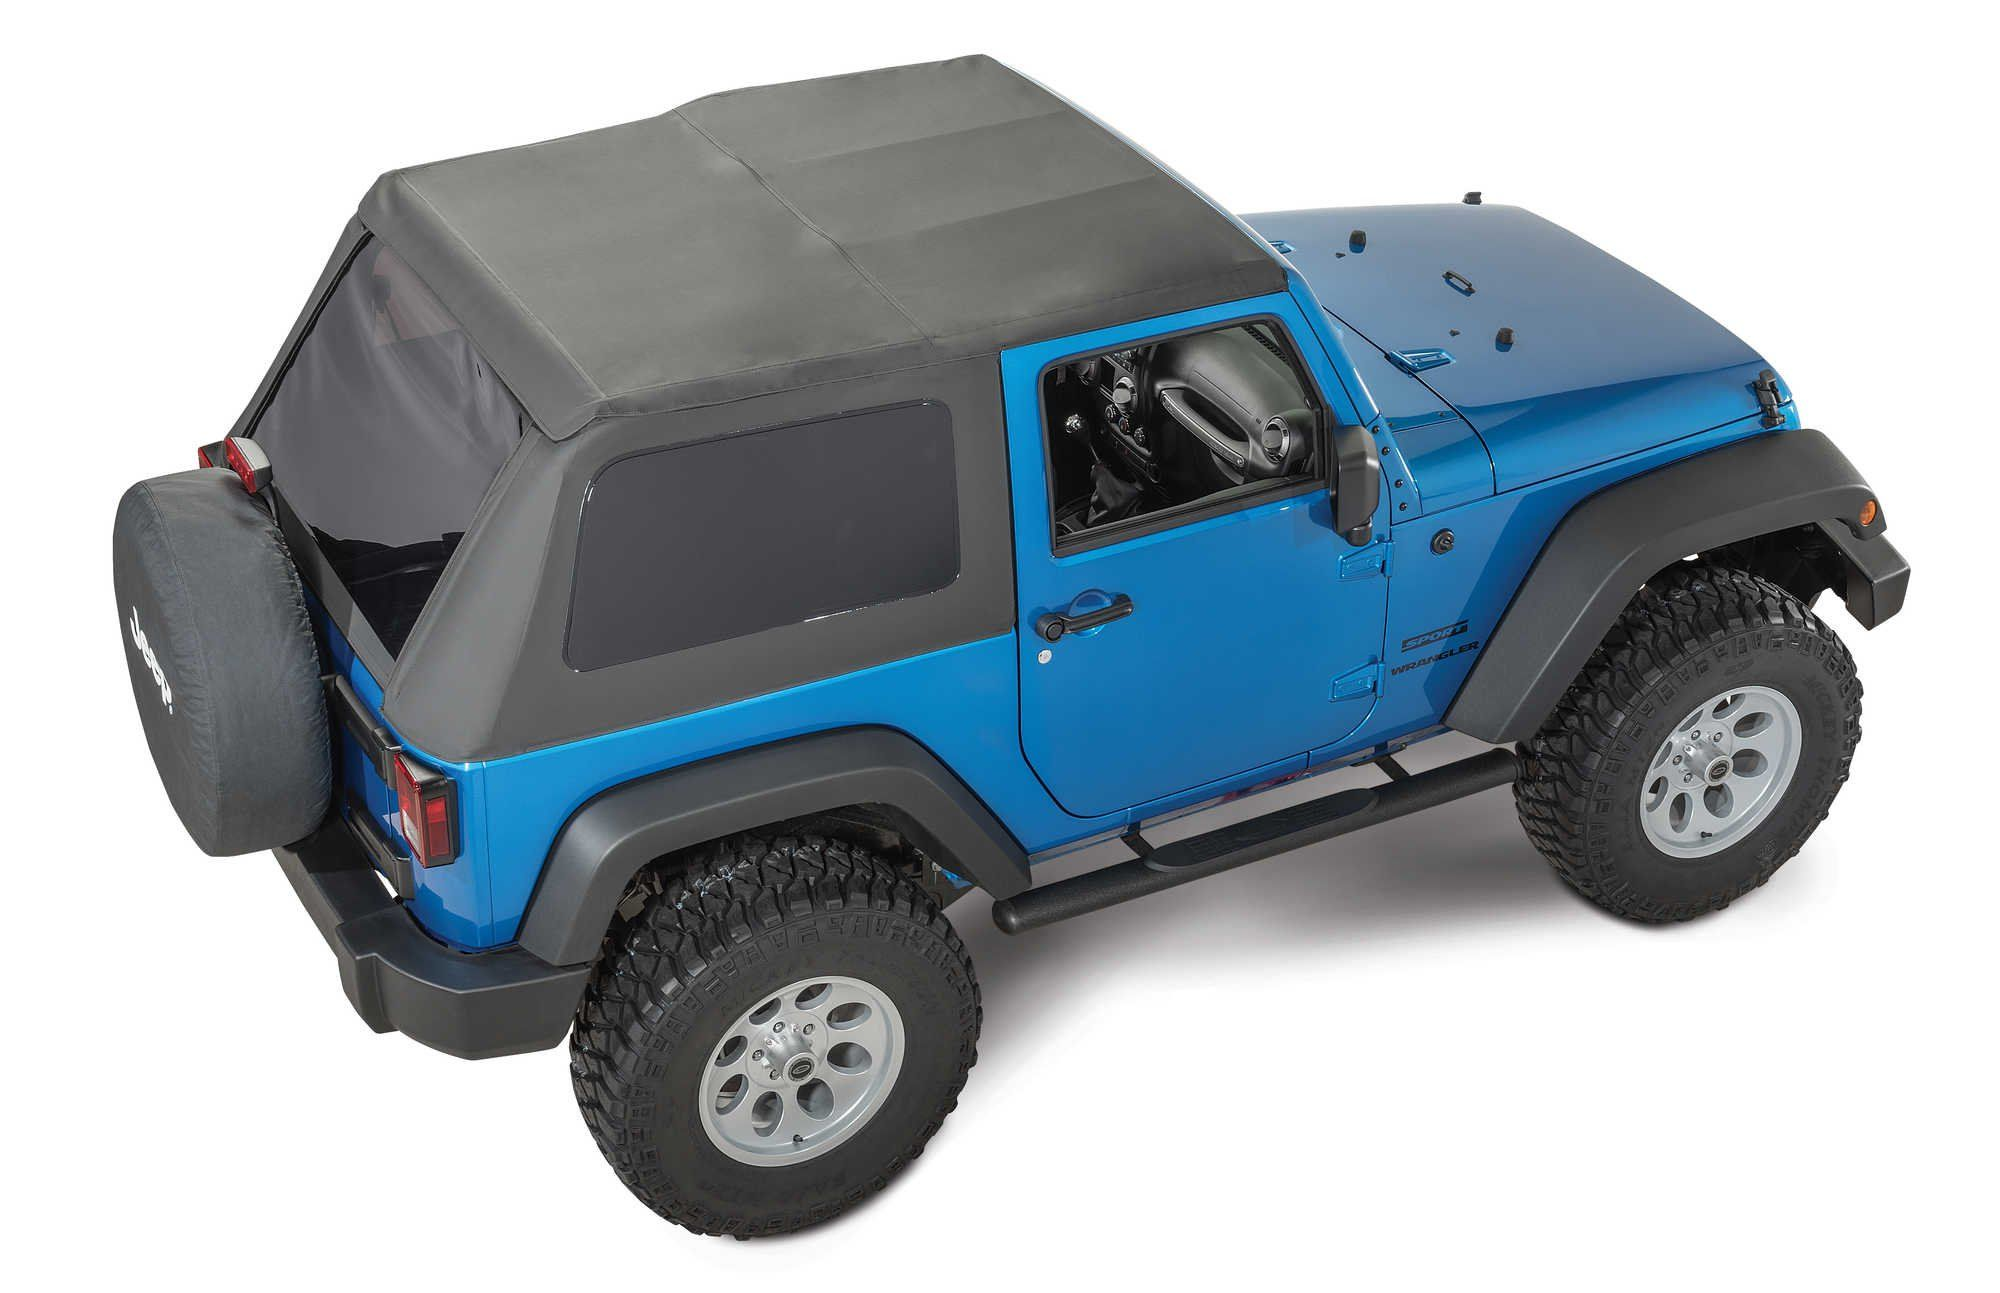 Our innovative soft top design specifically for the JK 2 door